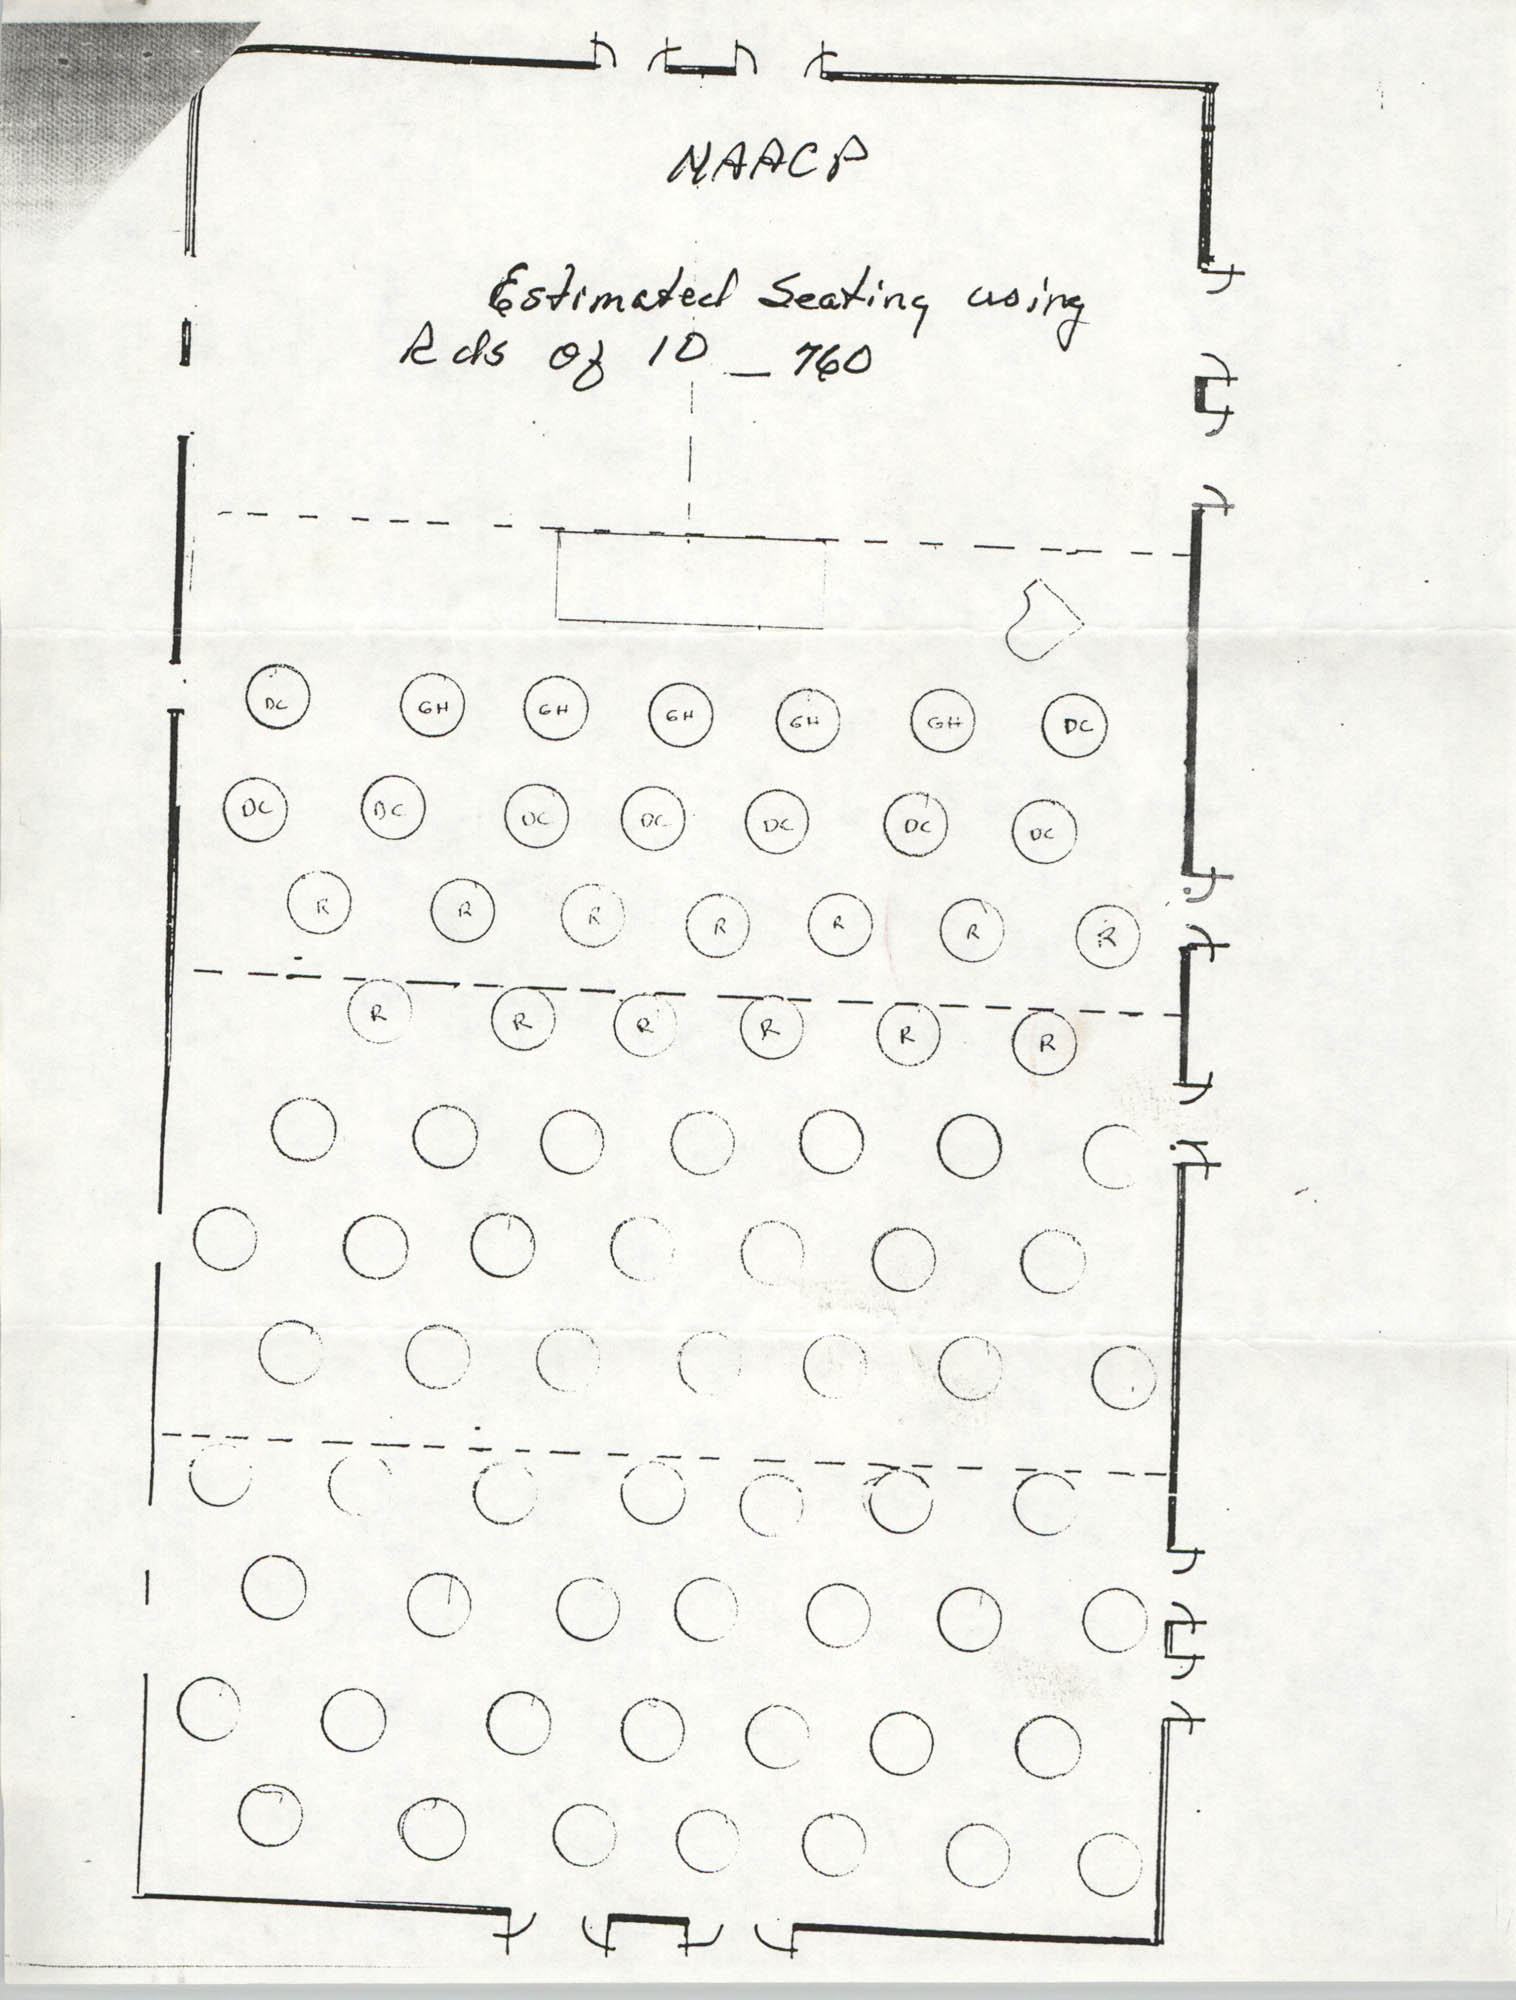 Estimated Seating Chart, Charleston Branch of the NAACP